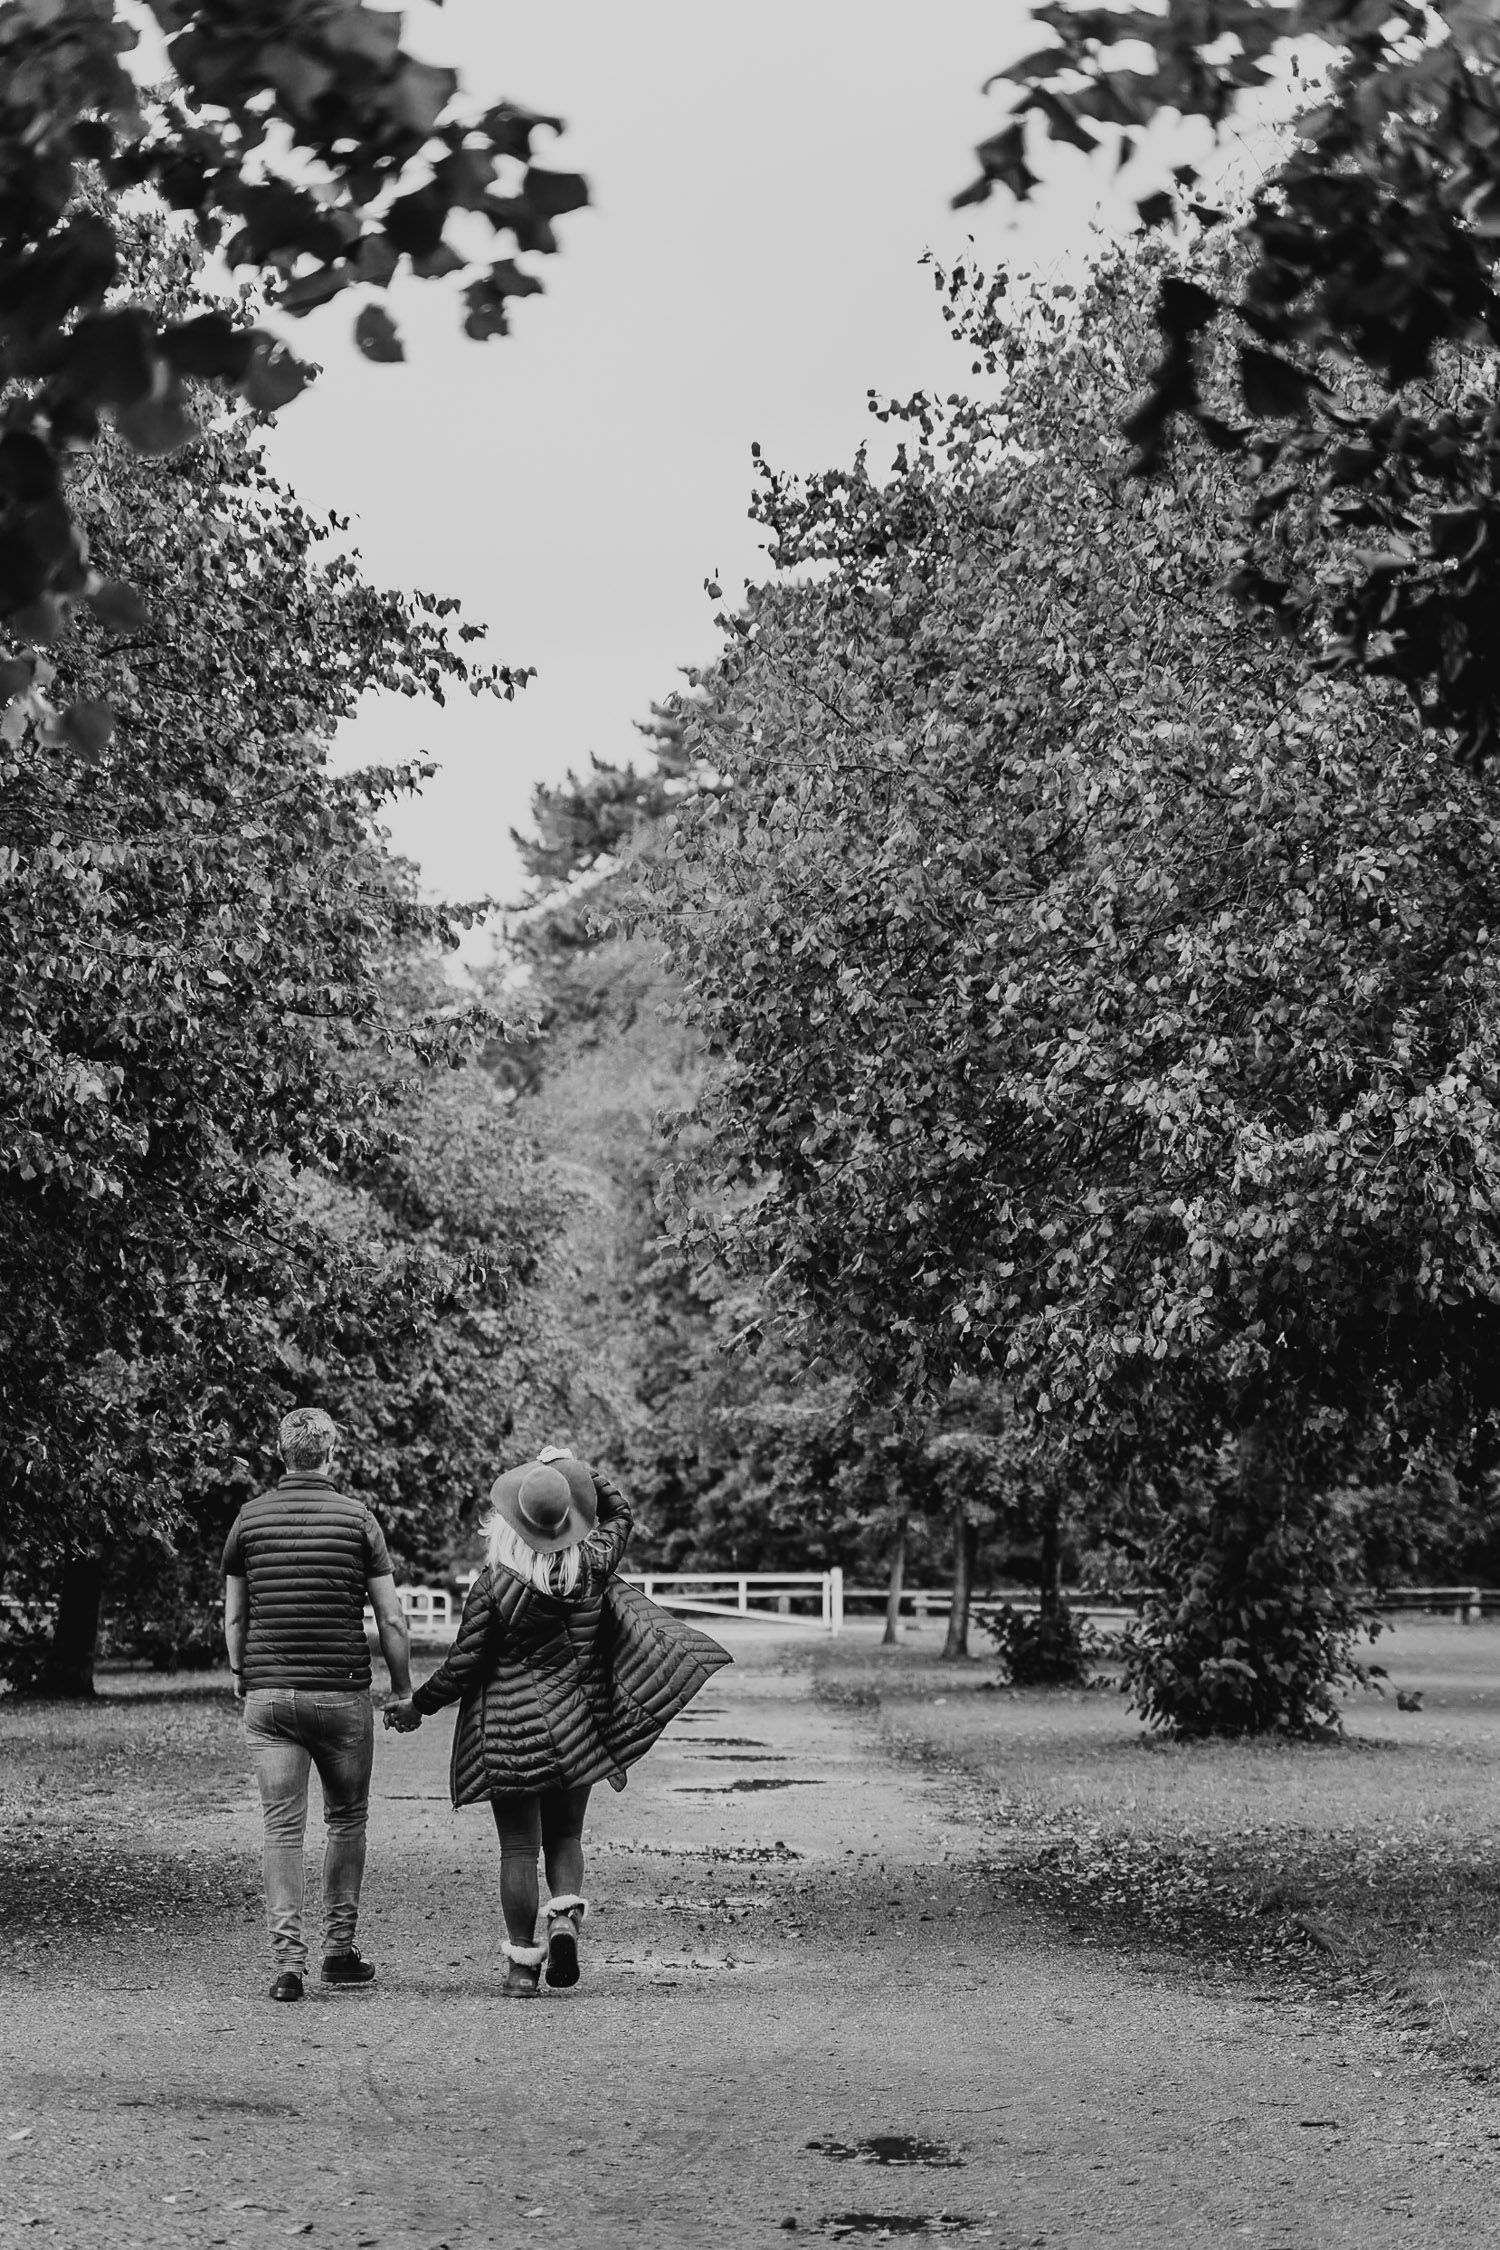 Black and white image of a couple walking away down a park path. Katherine and her Camera engagement photoshoot.